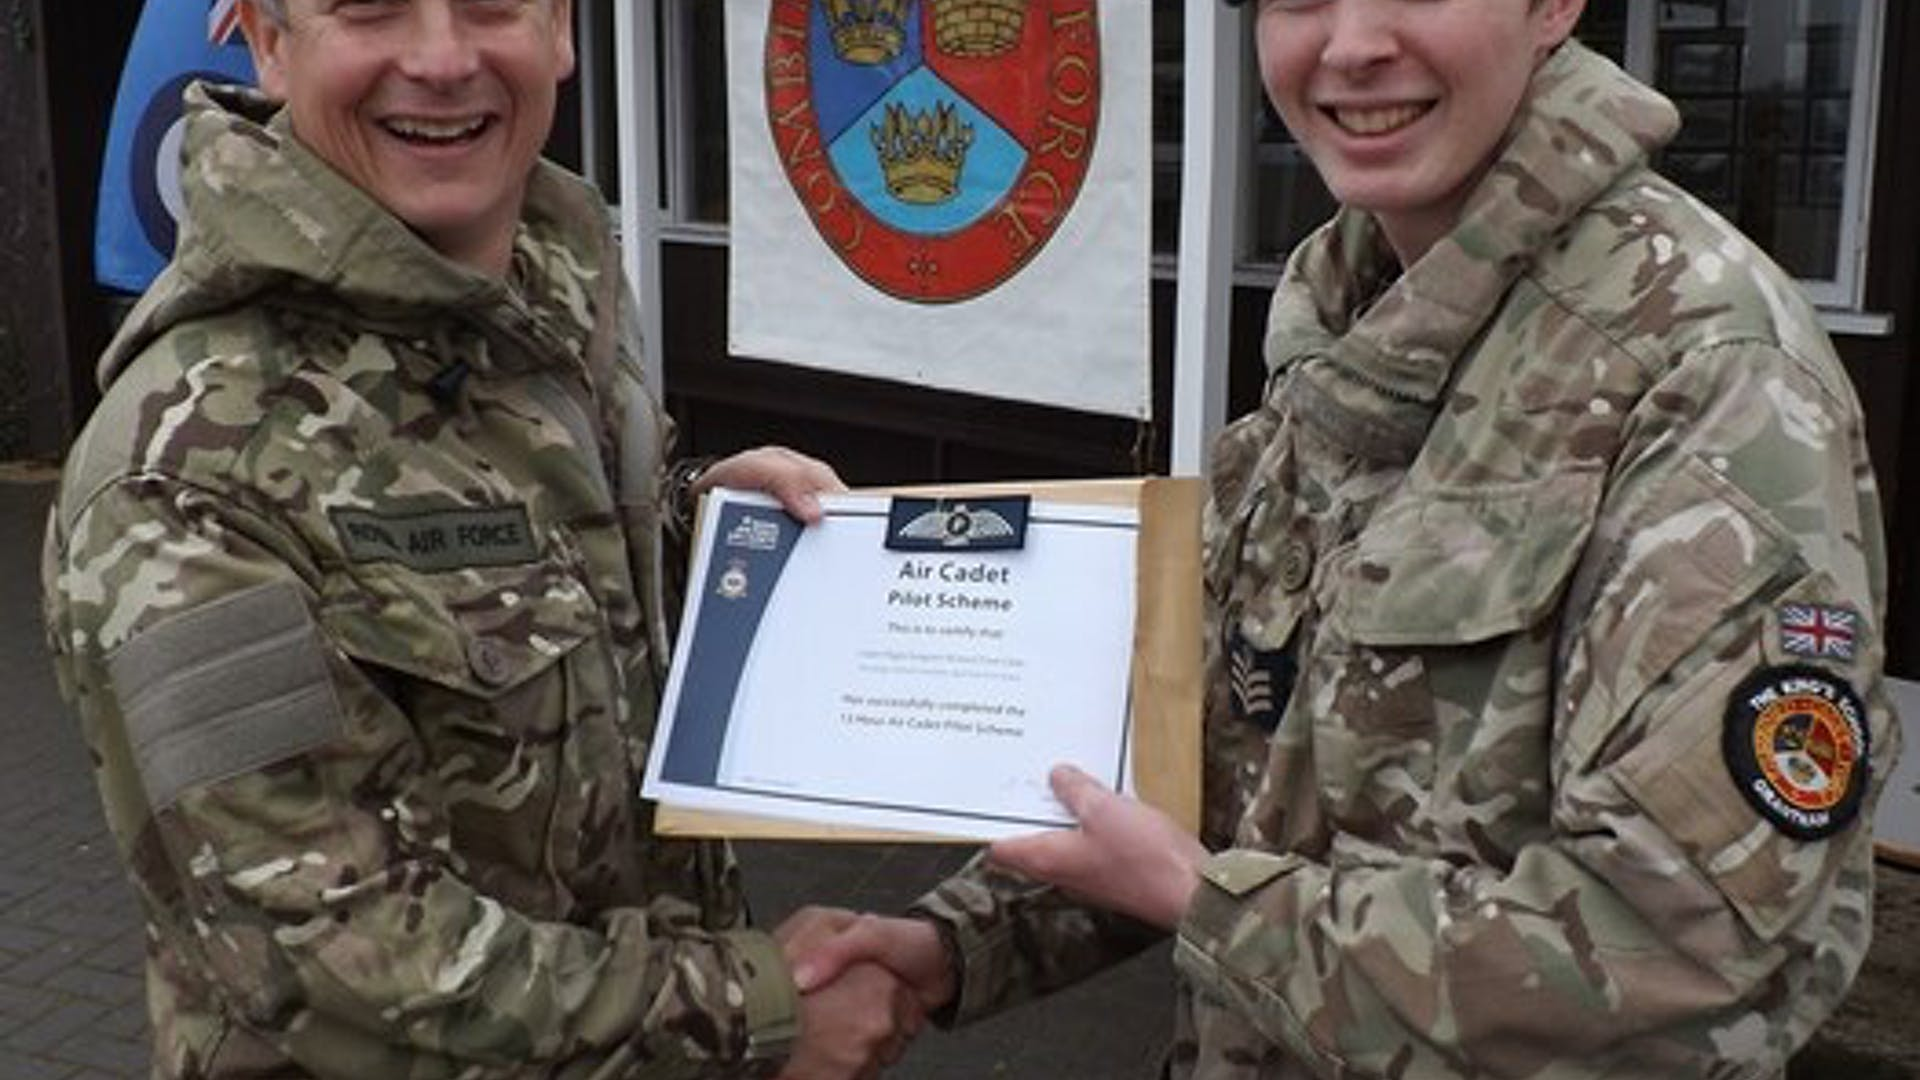 Flt Sgt Gibbs being officially presented with his Air Cadet Pilot Scheme by Air Commodore Bentley at our recent Biannual small 1